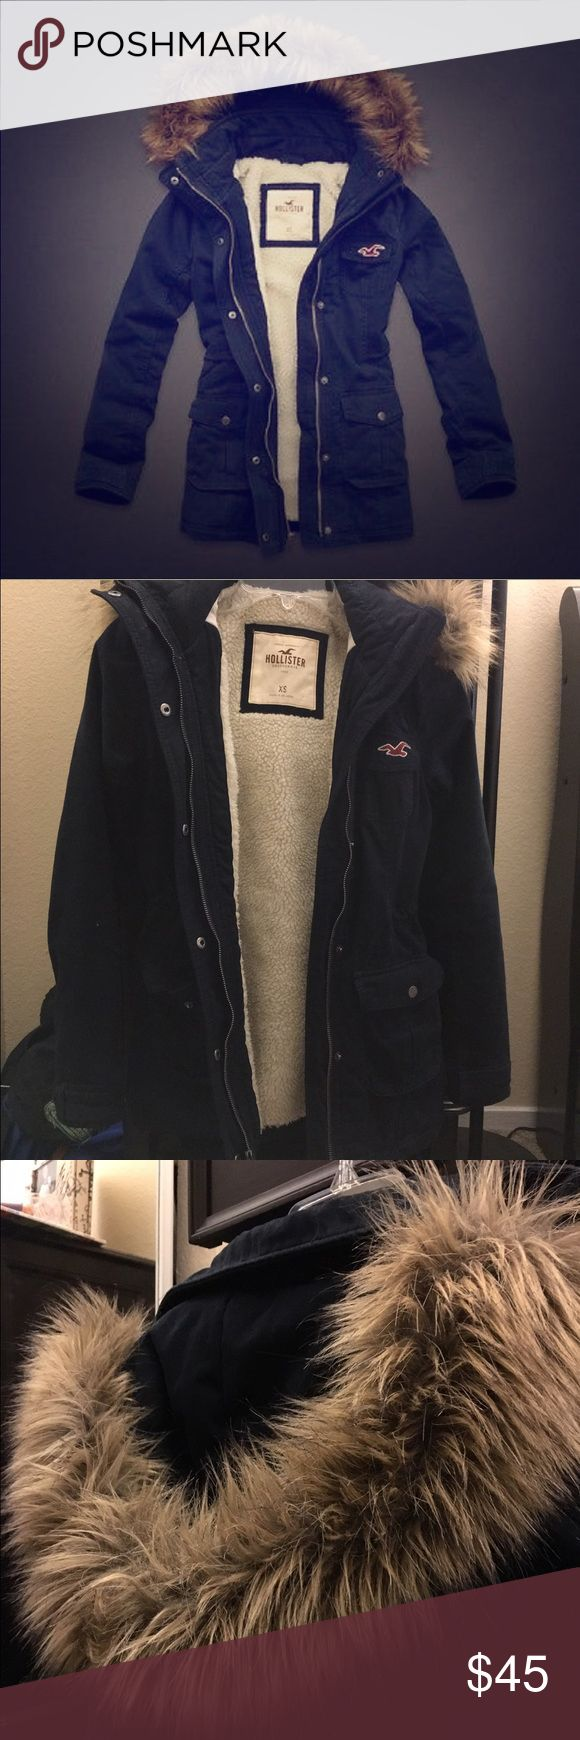 Hollister Twill Navy Blue Parka This is a twill navy parka from Hollister! I tried to model it although it hardly fits me as you can see. There are also adjustable ties on the inside of the jacket to make it cinch more at the waist or open it up. To give you an idea, I am 5'8 and this is how it fits on me. Also the fur on the hood is detachable, and there is a pocket in the coat to place an MP3 player or phone and a port to feed your headphones through Hollister Jackets & Coats